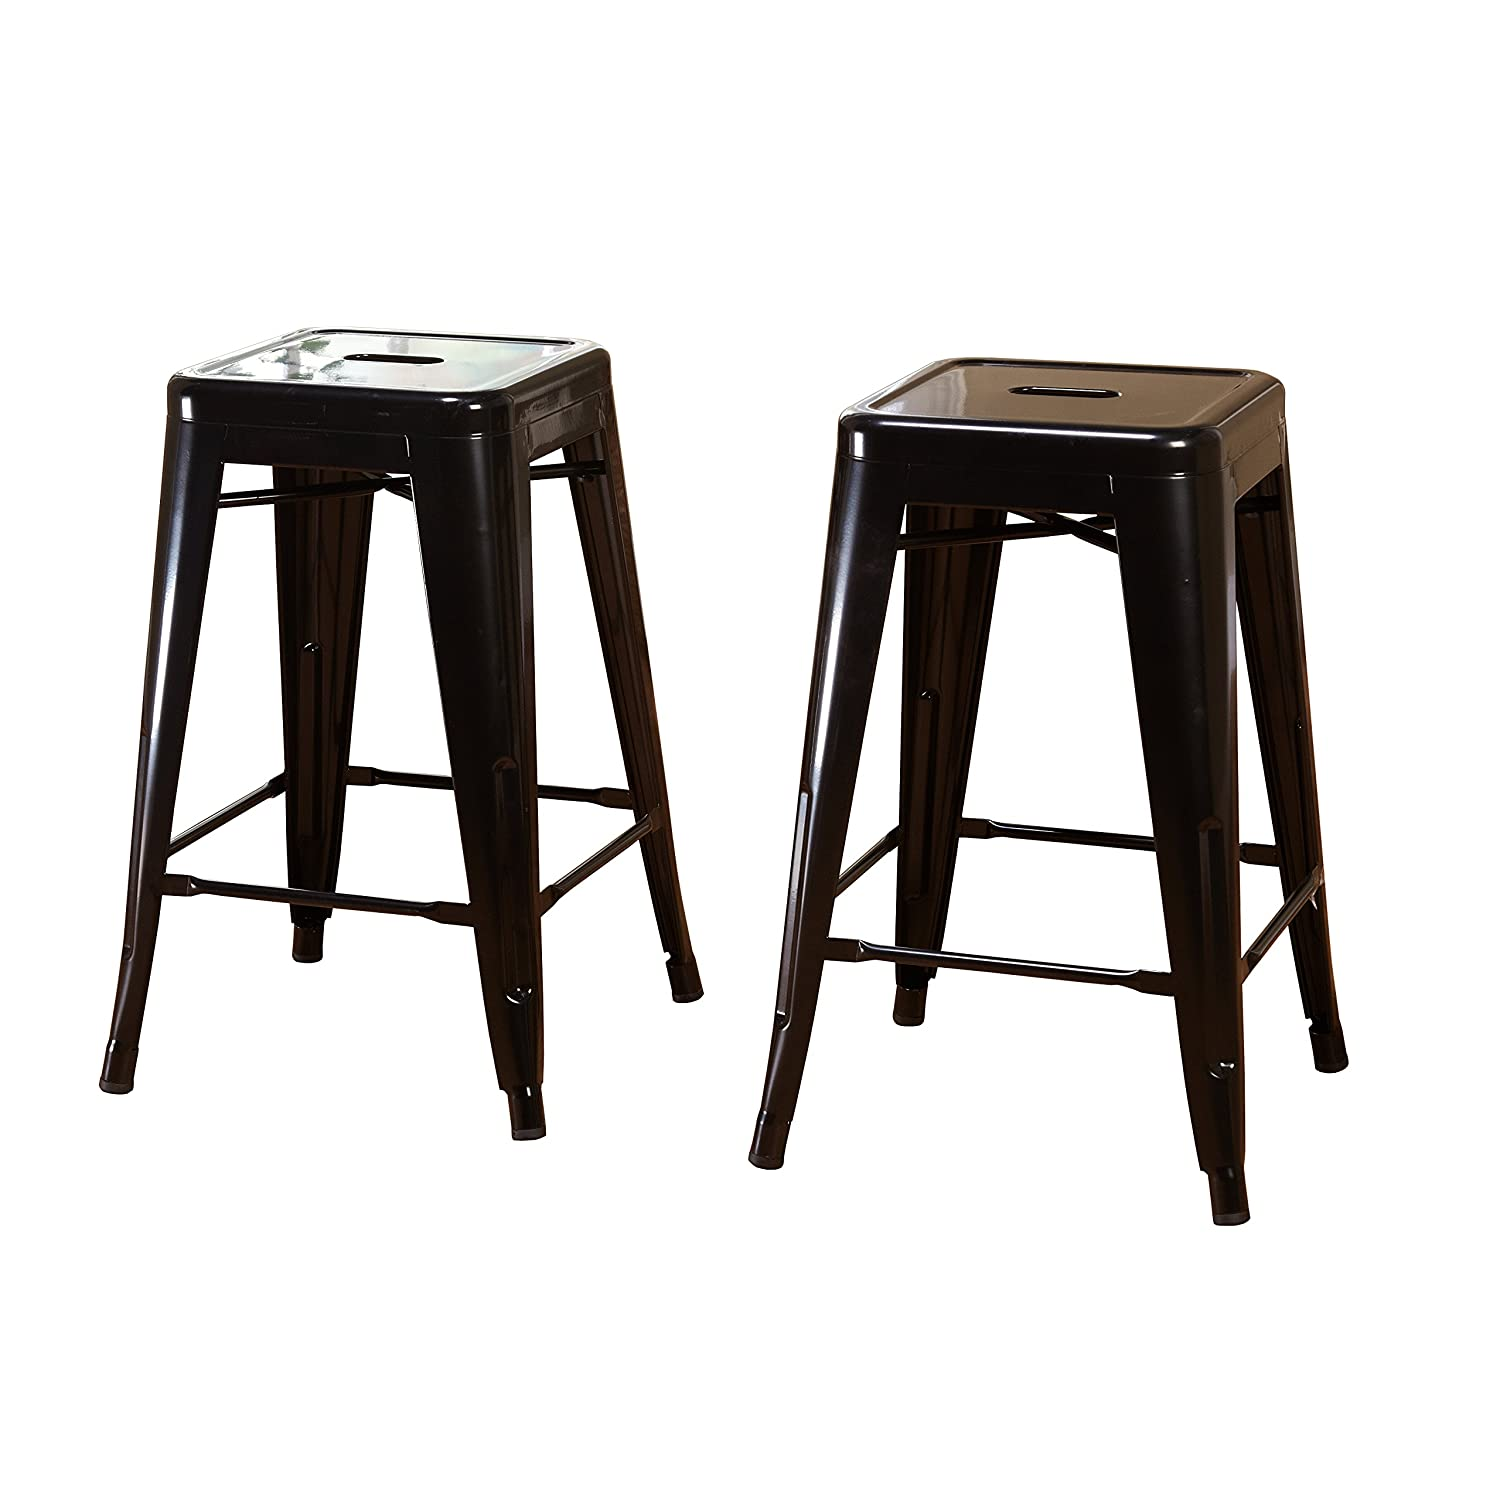 Stupendous Target Marketing Systems Milan Collection Set Of 2 Metal Backless And Armless Stacking Stools With Floor Glides Black Creativecarmelina Interior Chair Design Creativecarmelinacom